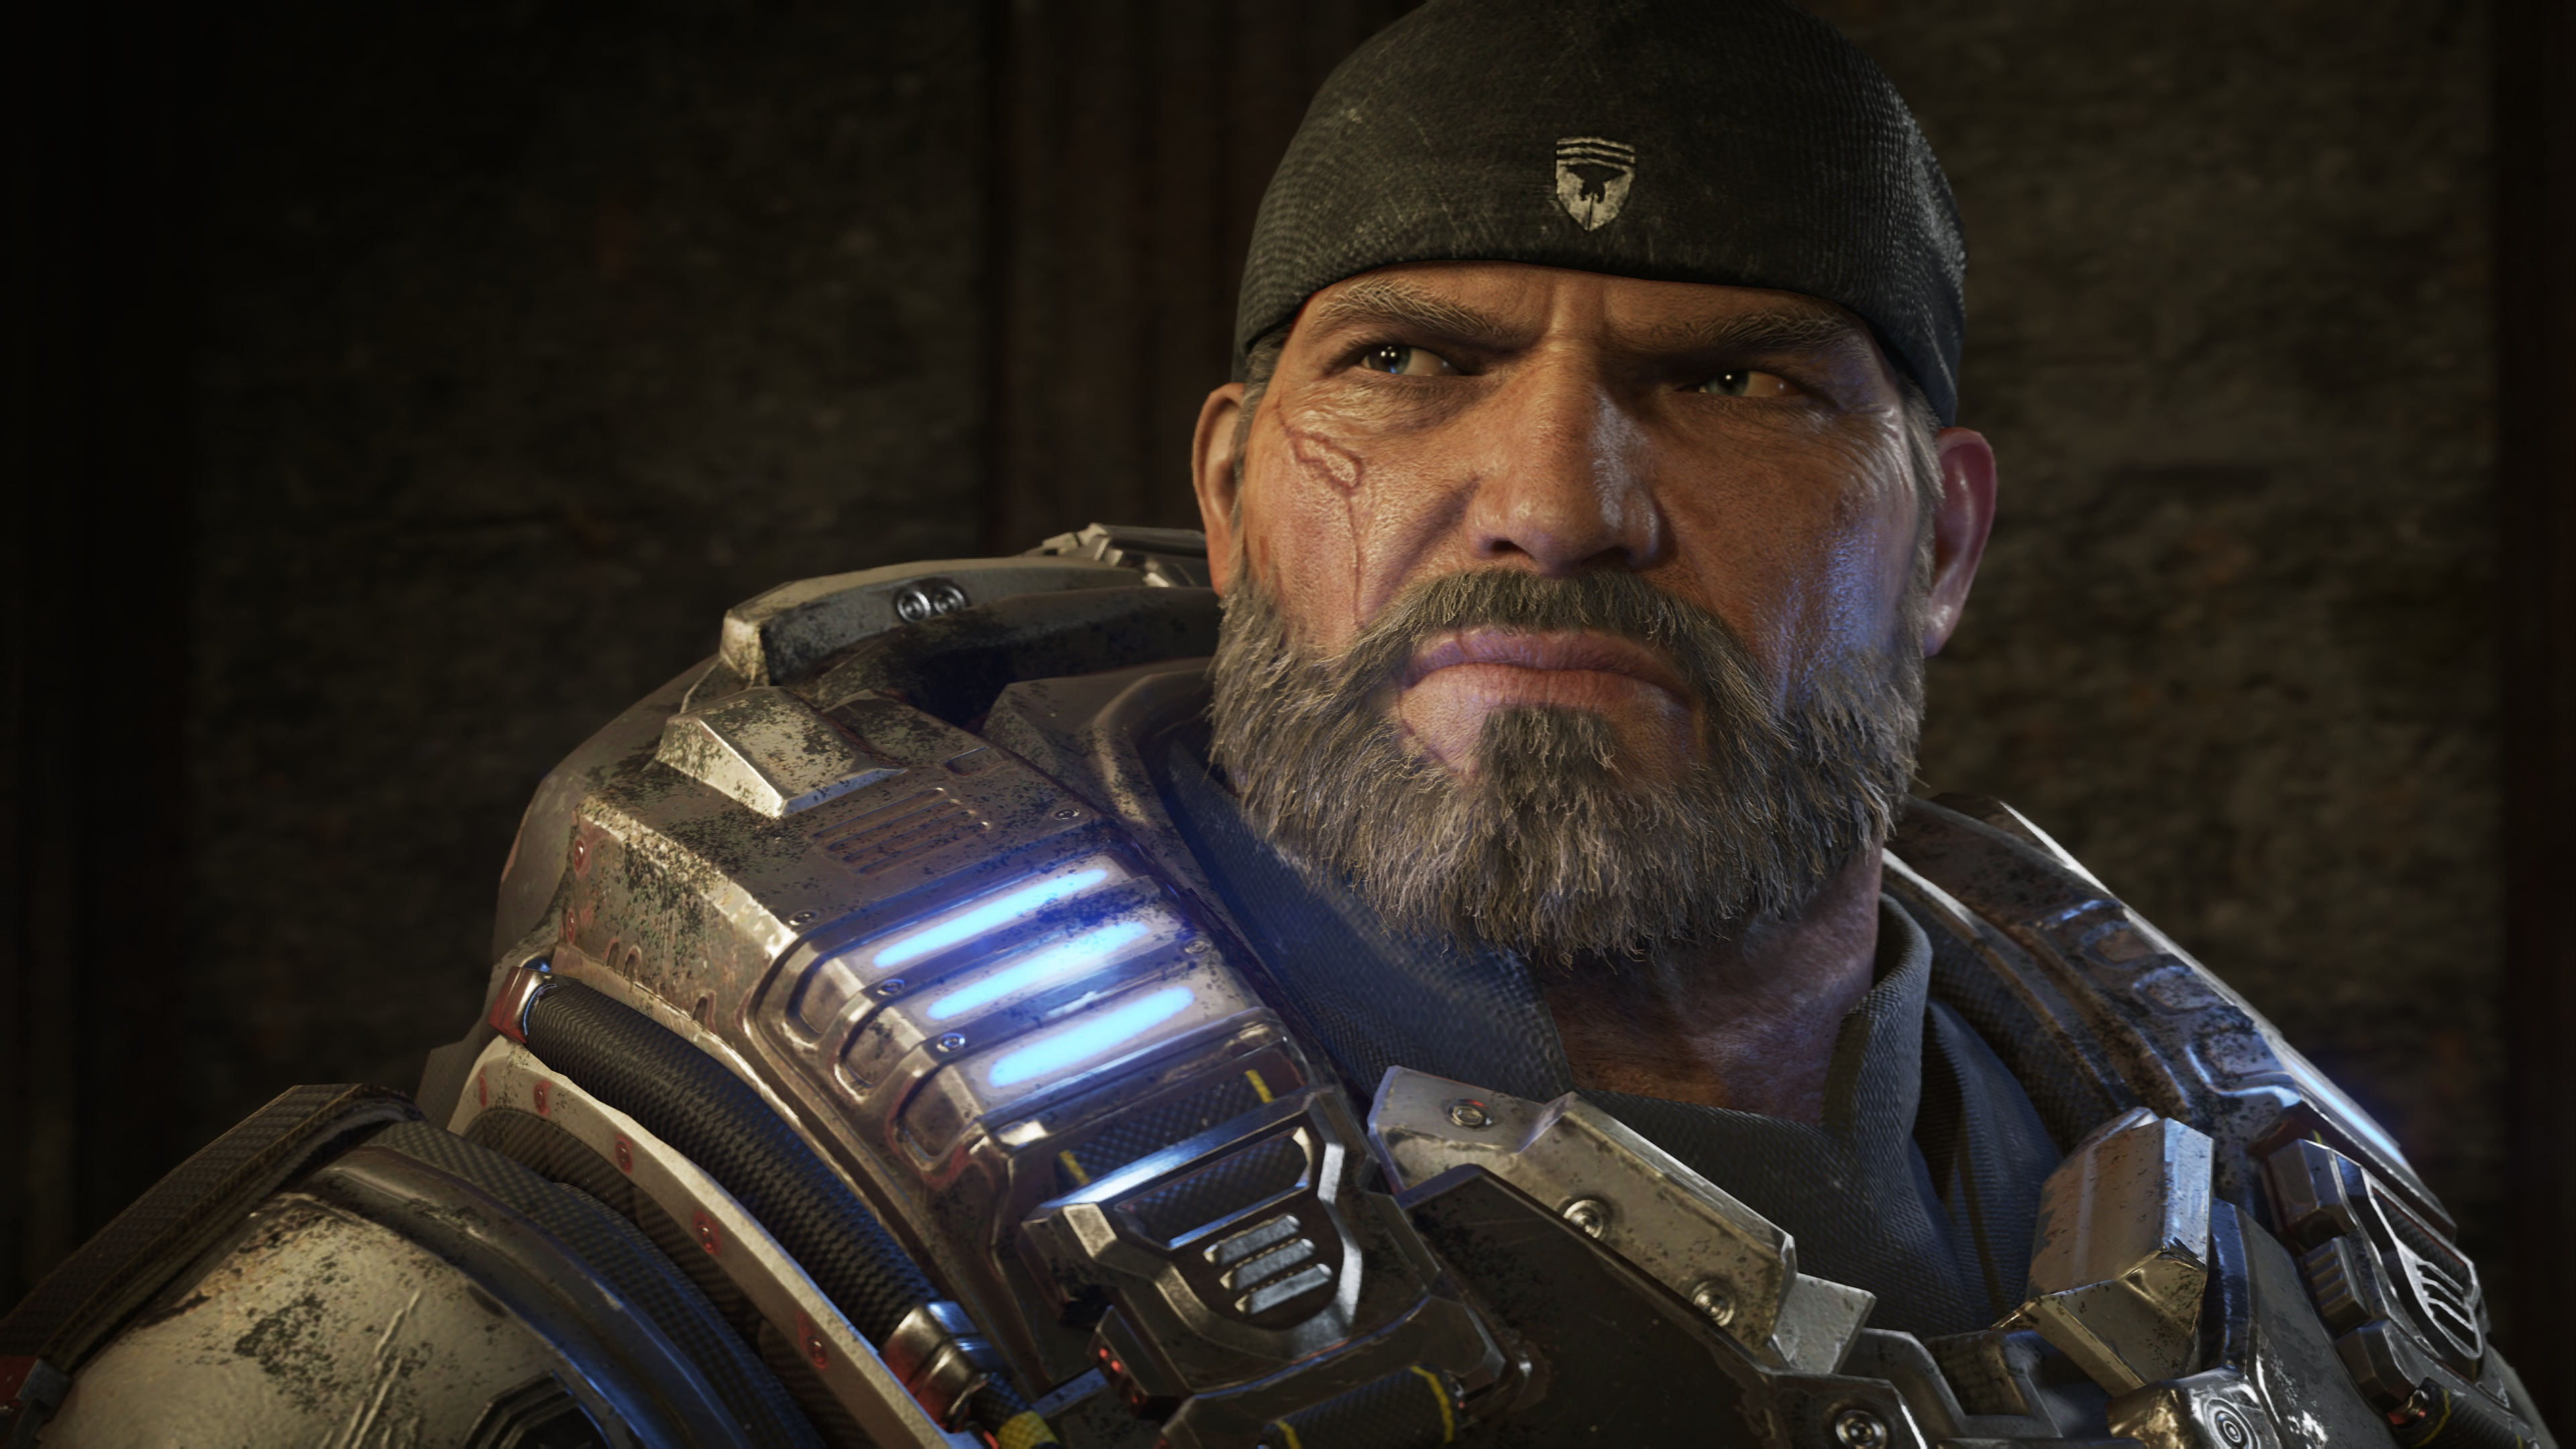 Dave Bautista Wants To Play Marcus Fenix In A Gears Of War